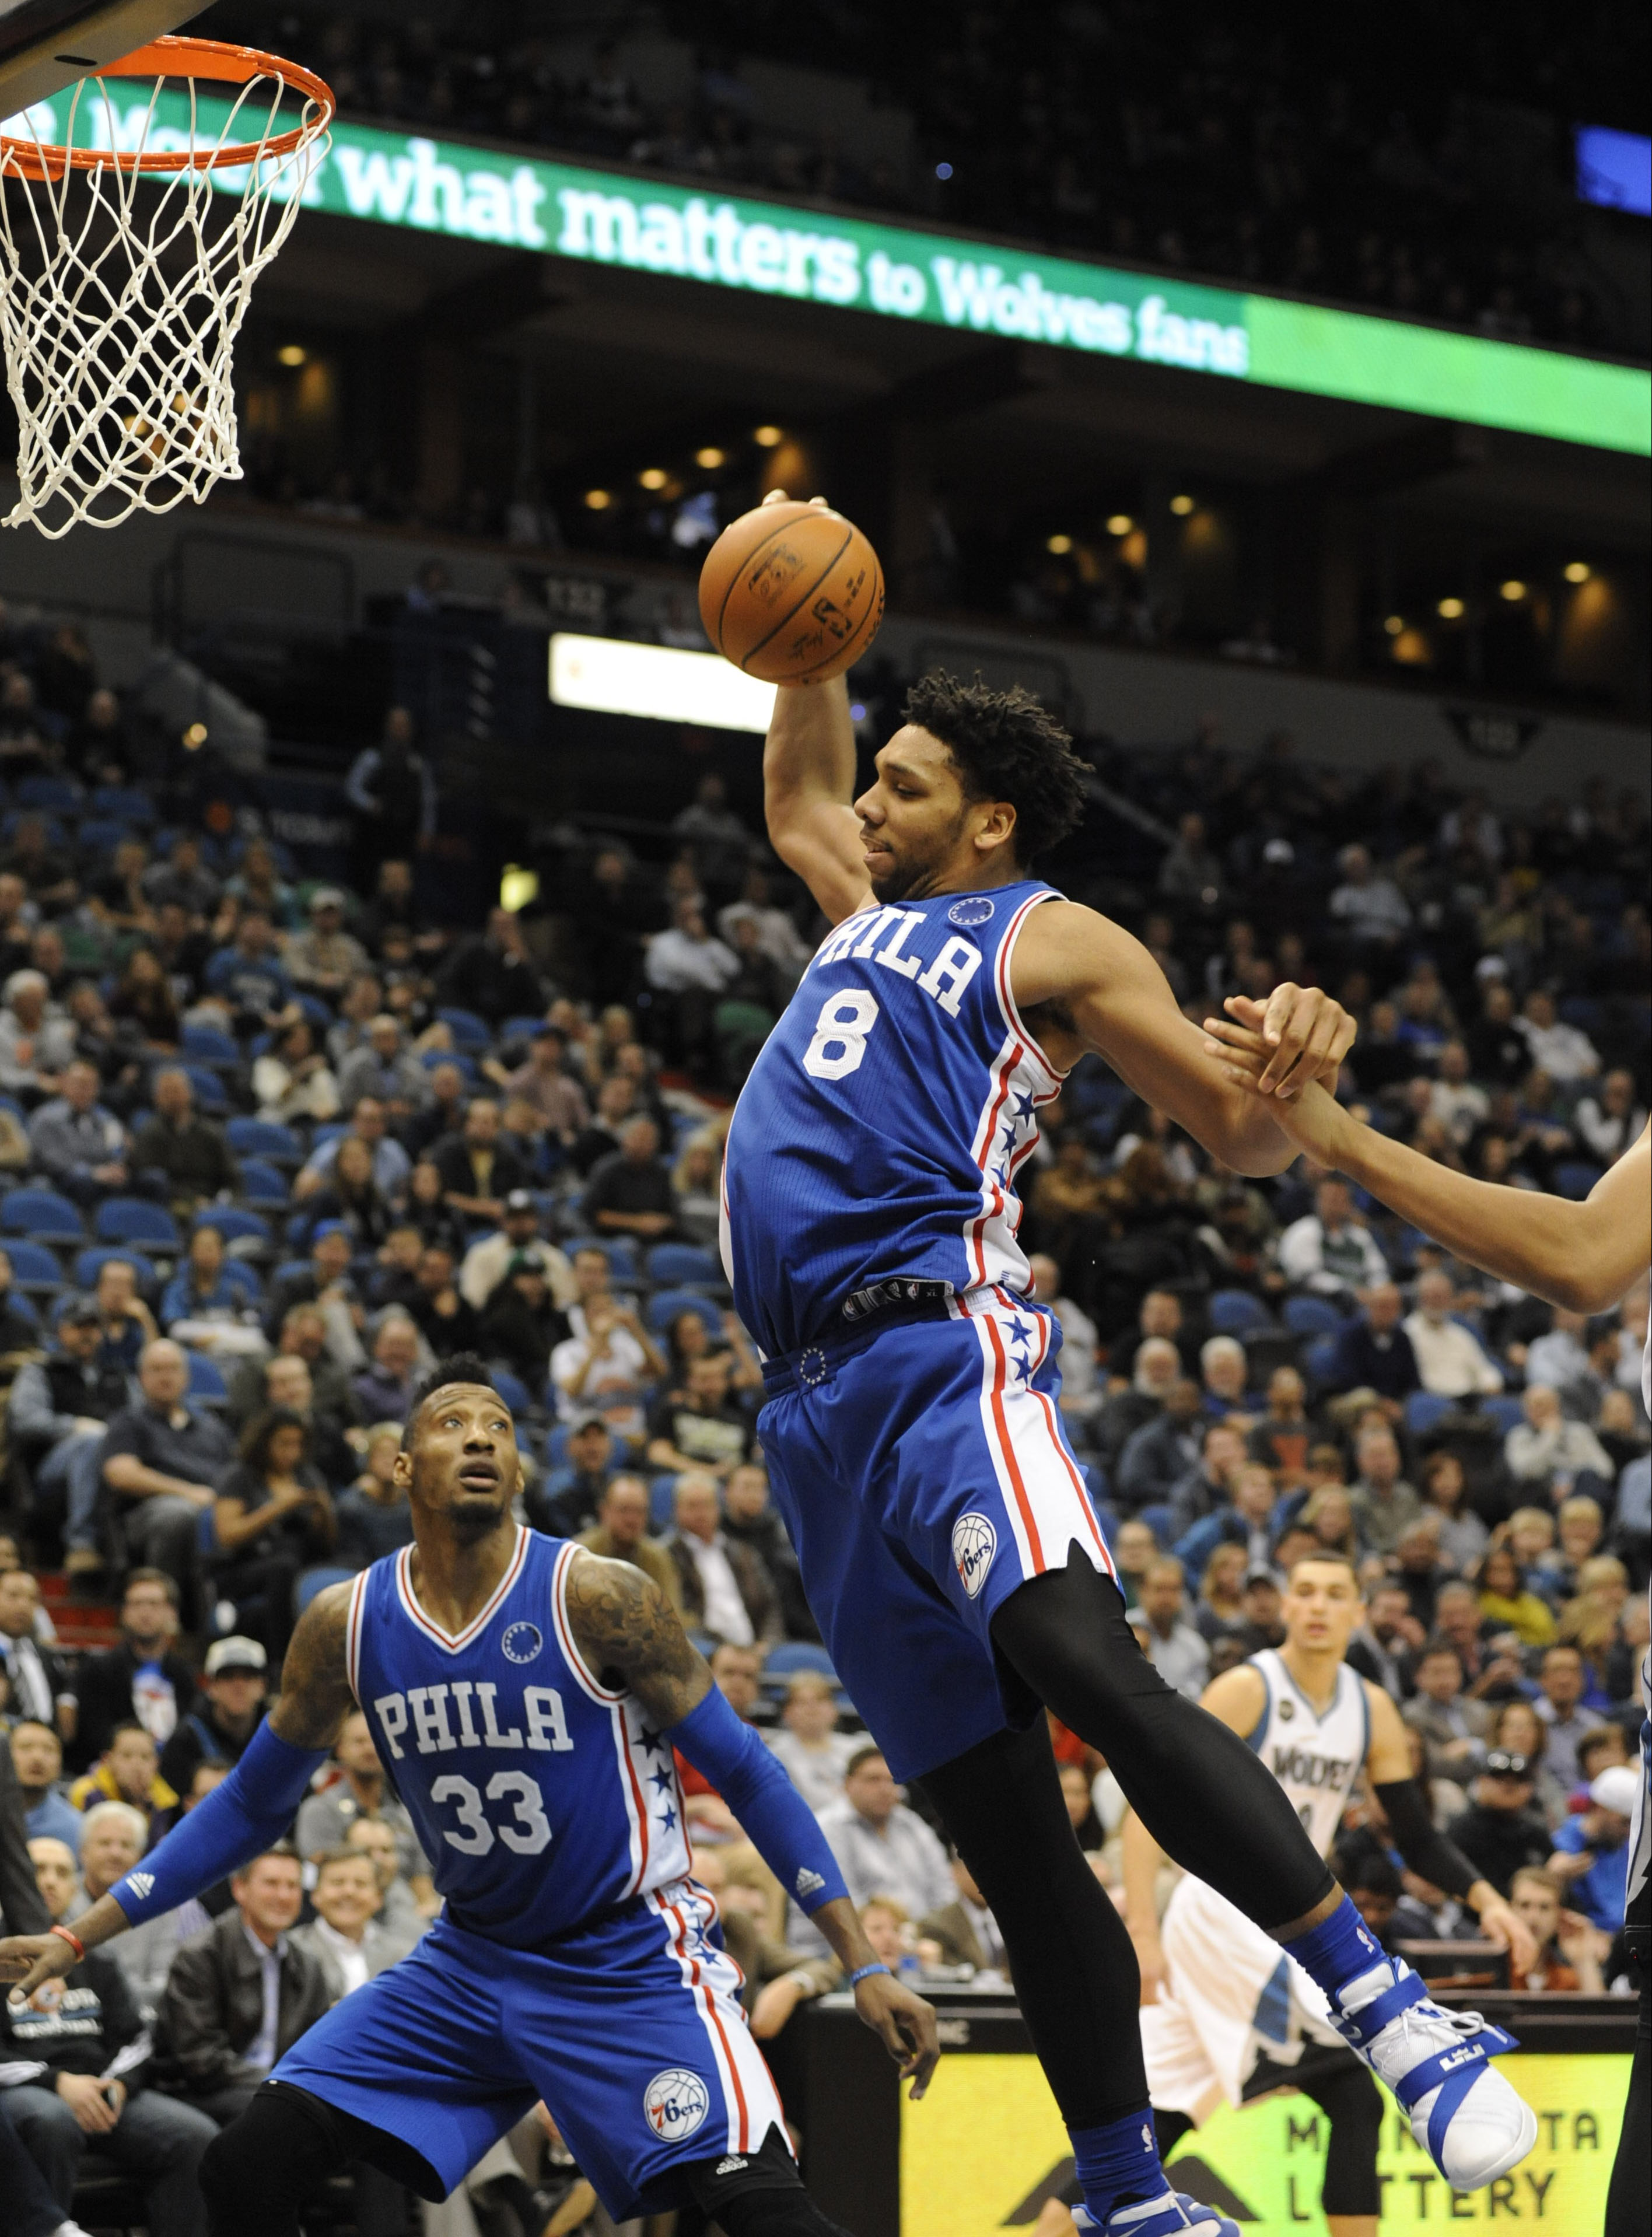 Jahlil Okafor is picturing a random bar dude's face right now...